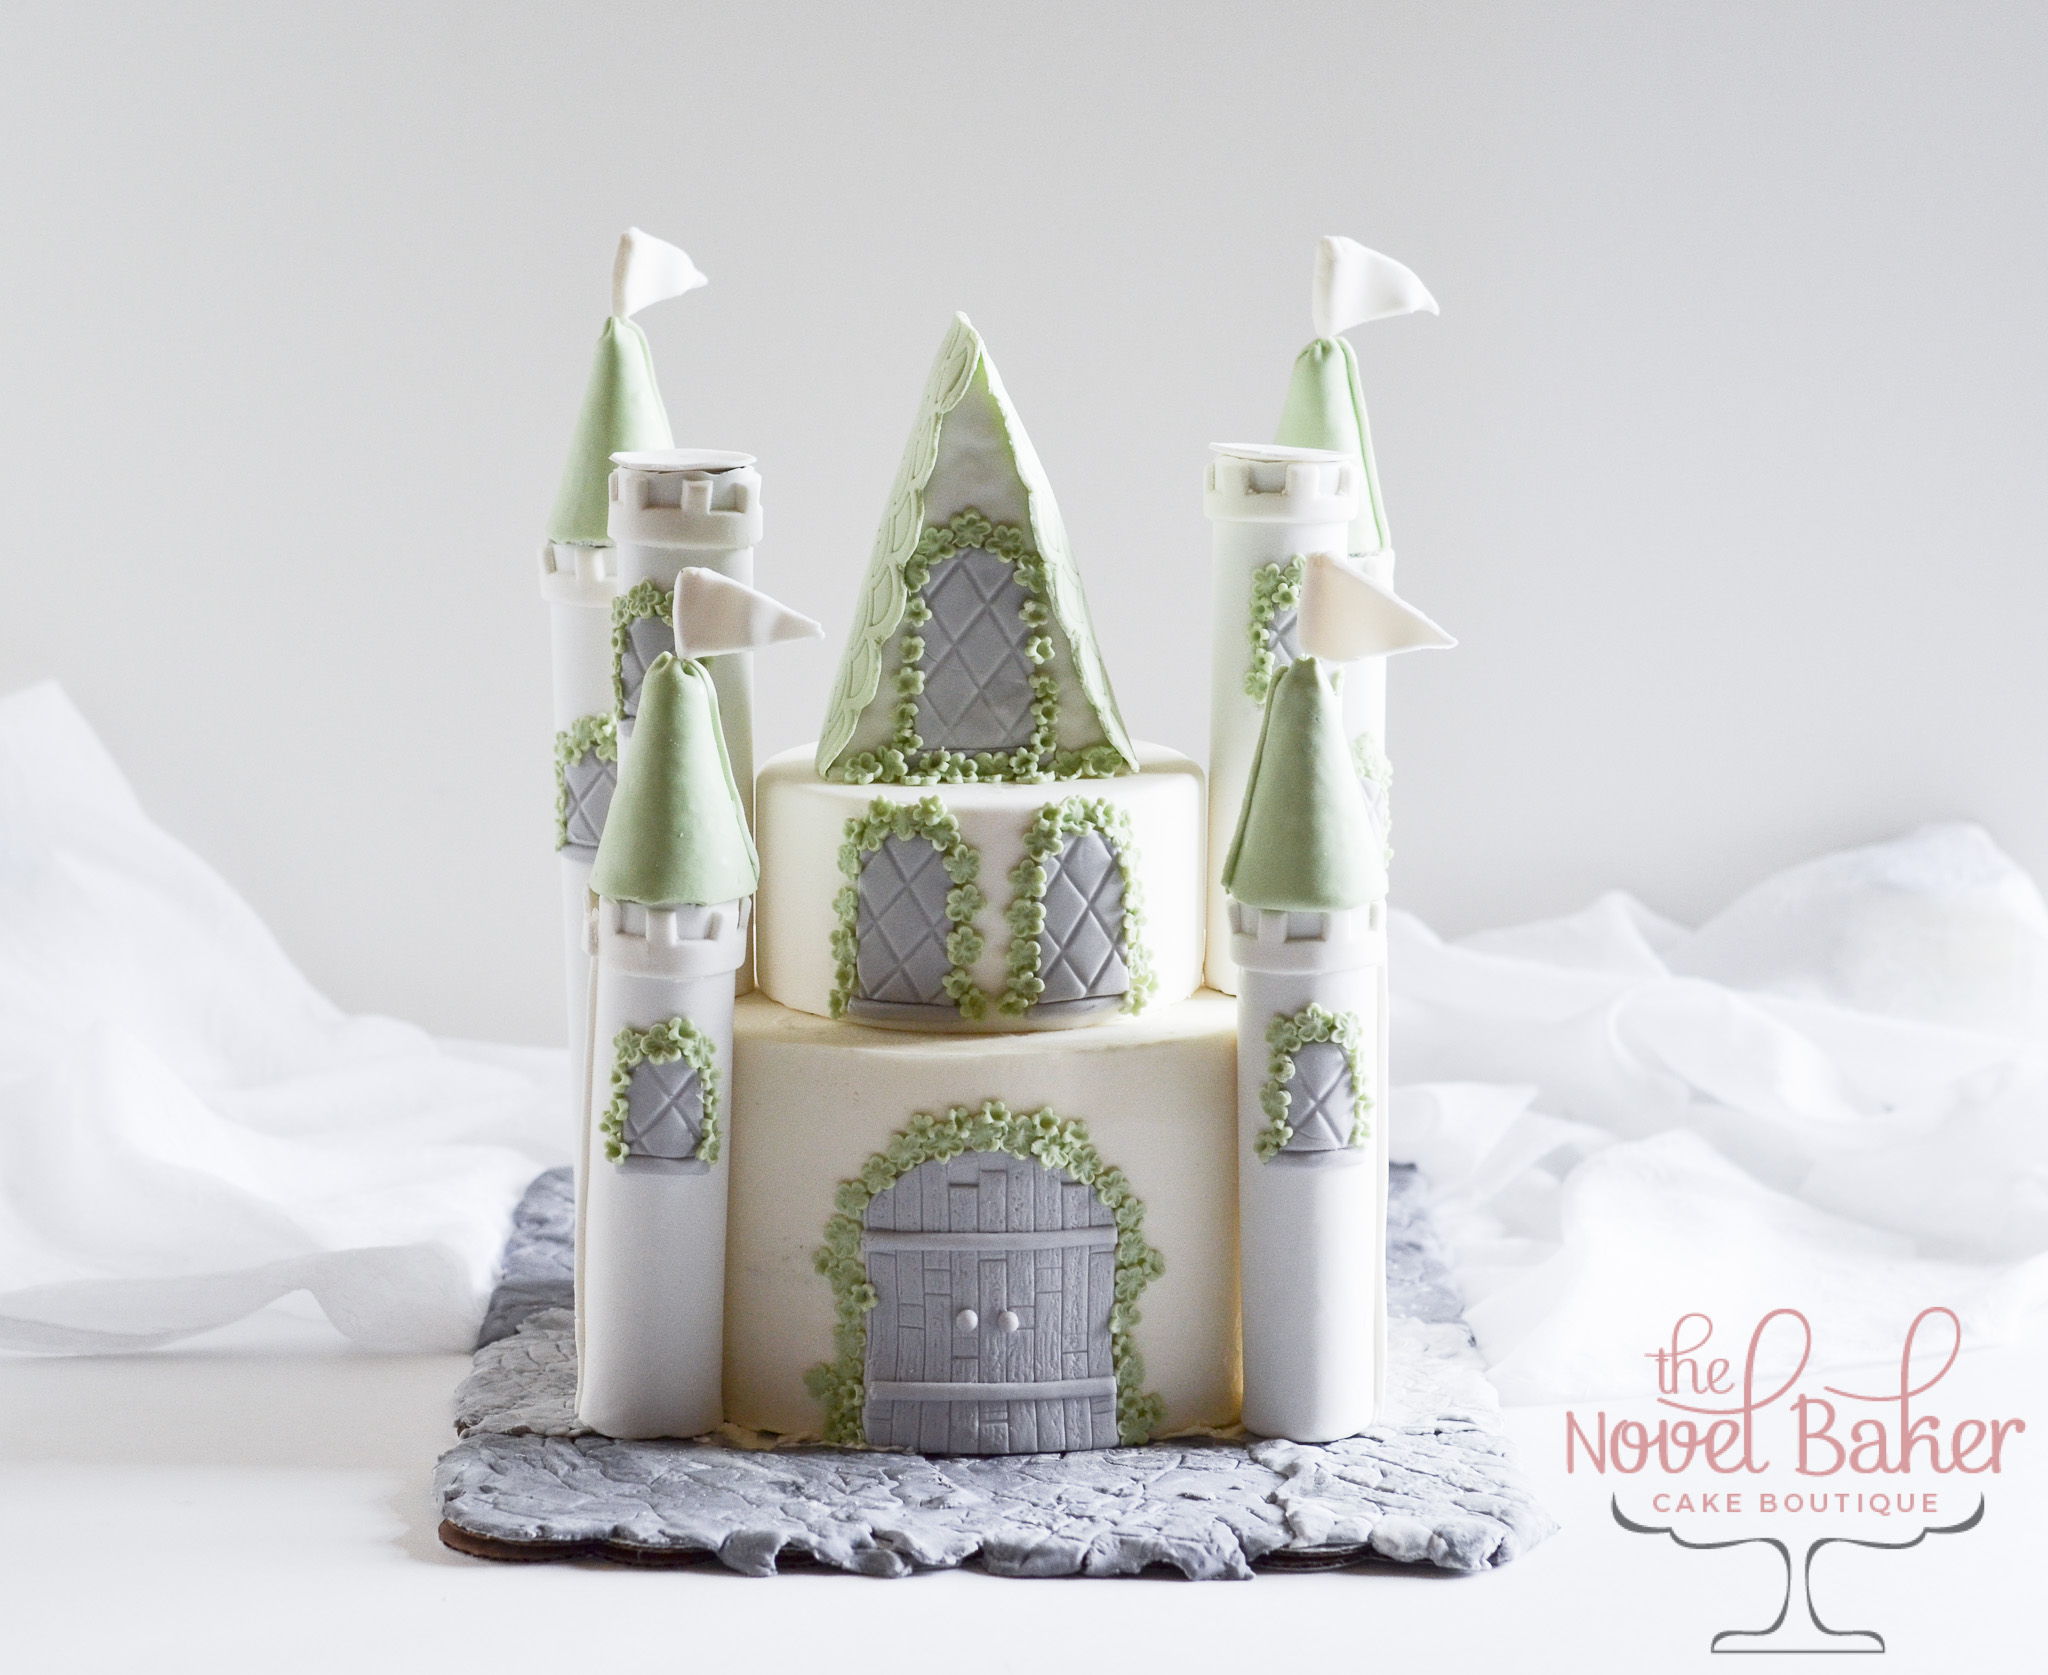 Fairy Tale Castle Cake in white buttercream with Fondant details -- gray diamond windows and wooden front door, mint flowers and mint turrets so they can live happily ever after.